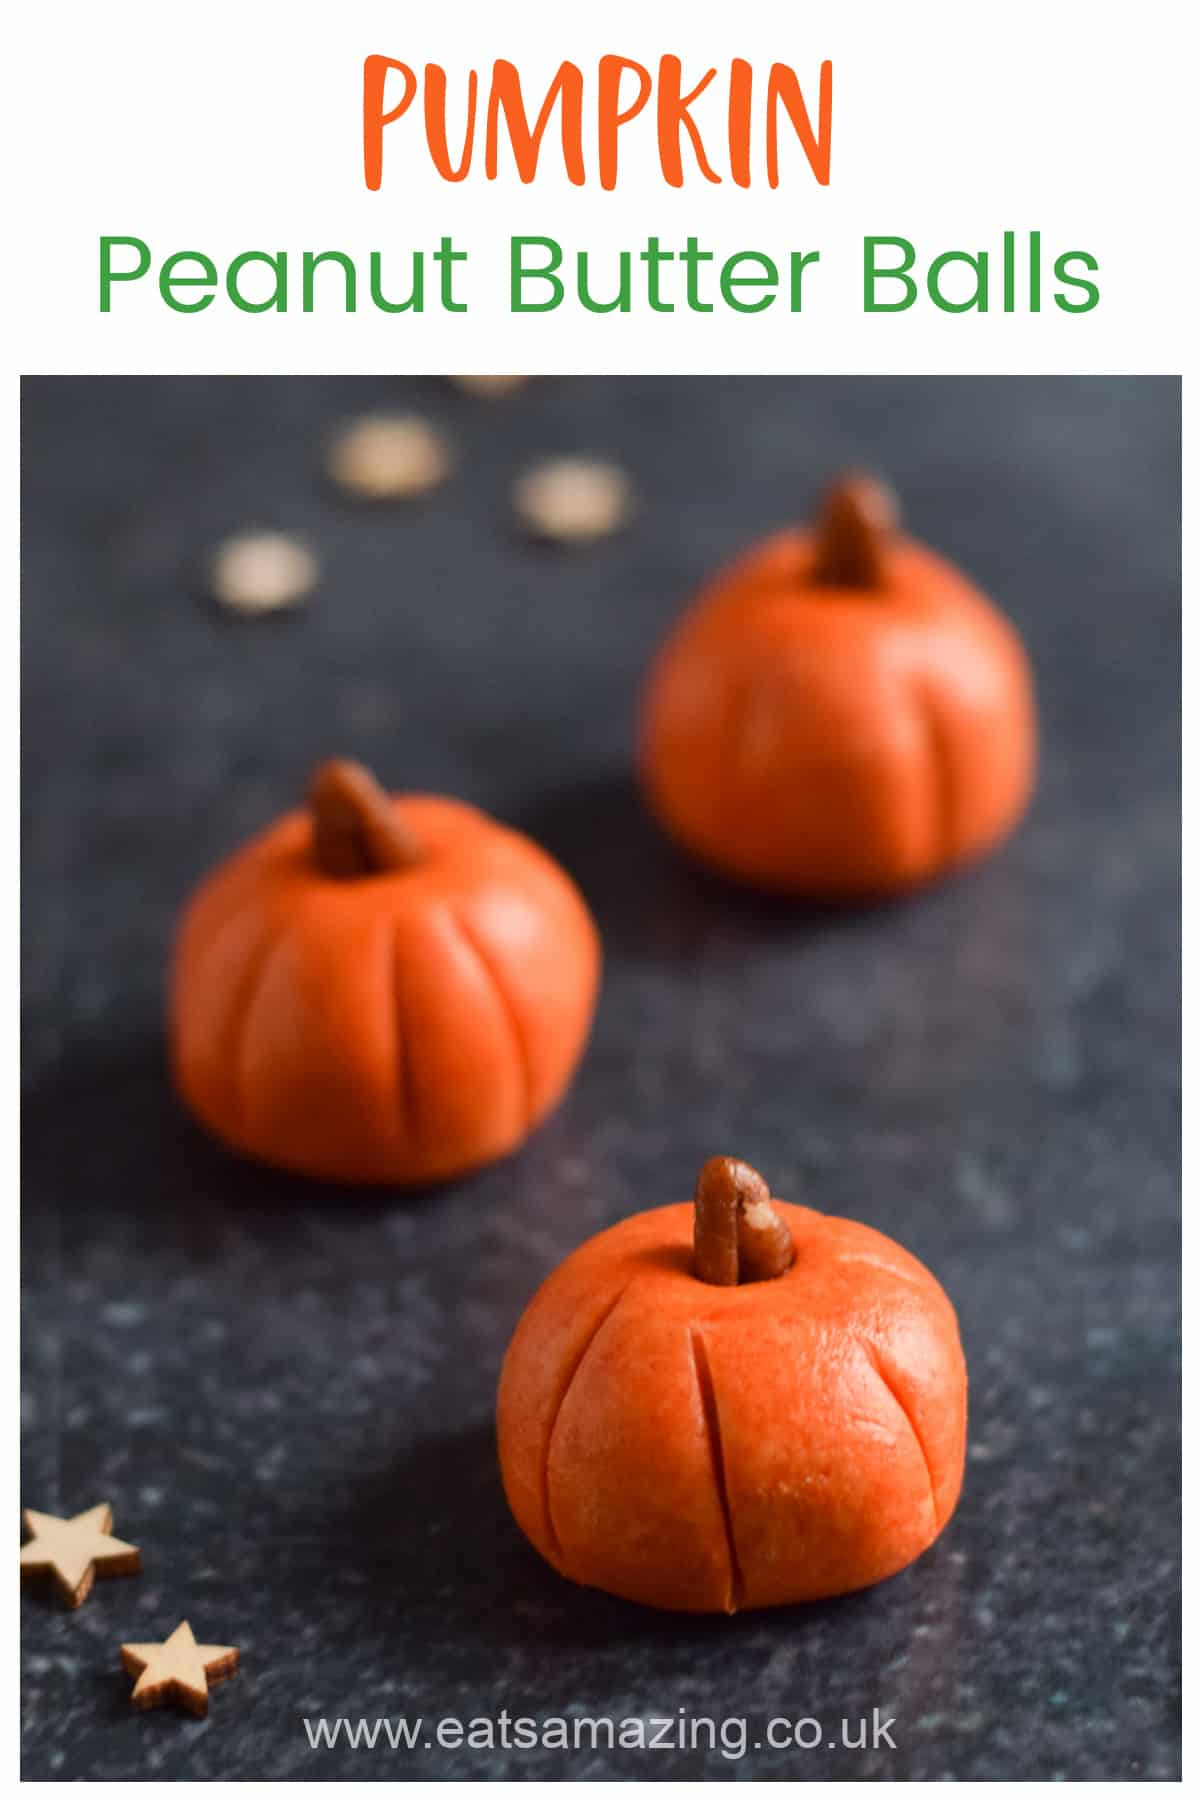 Pumpkin Halloween Peanut Butter Balls Recipe - Easy Fun Halloween Food for Kids